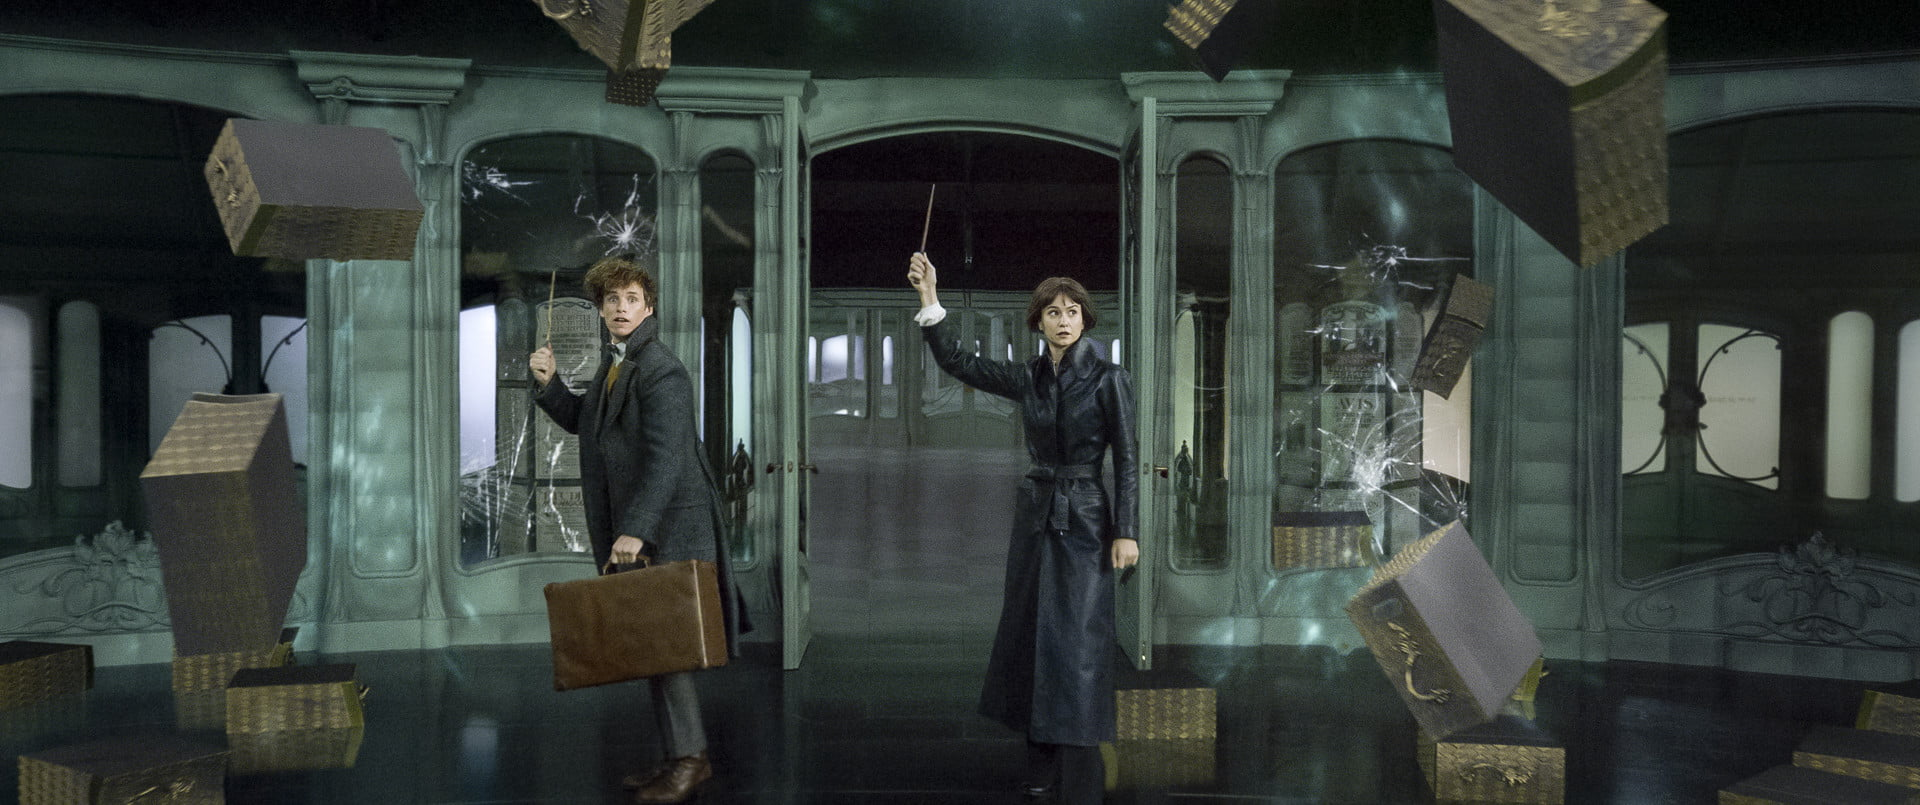 Fantastic Beasts: The Crimes of Grindelwald' Visual Effects